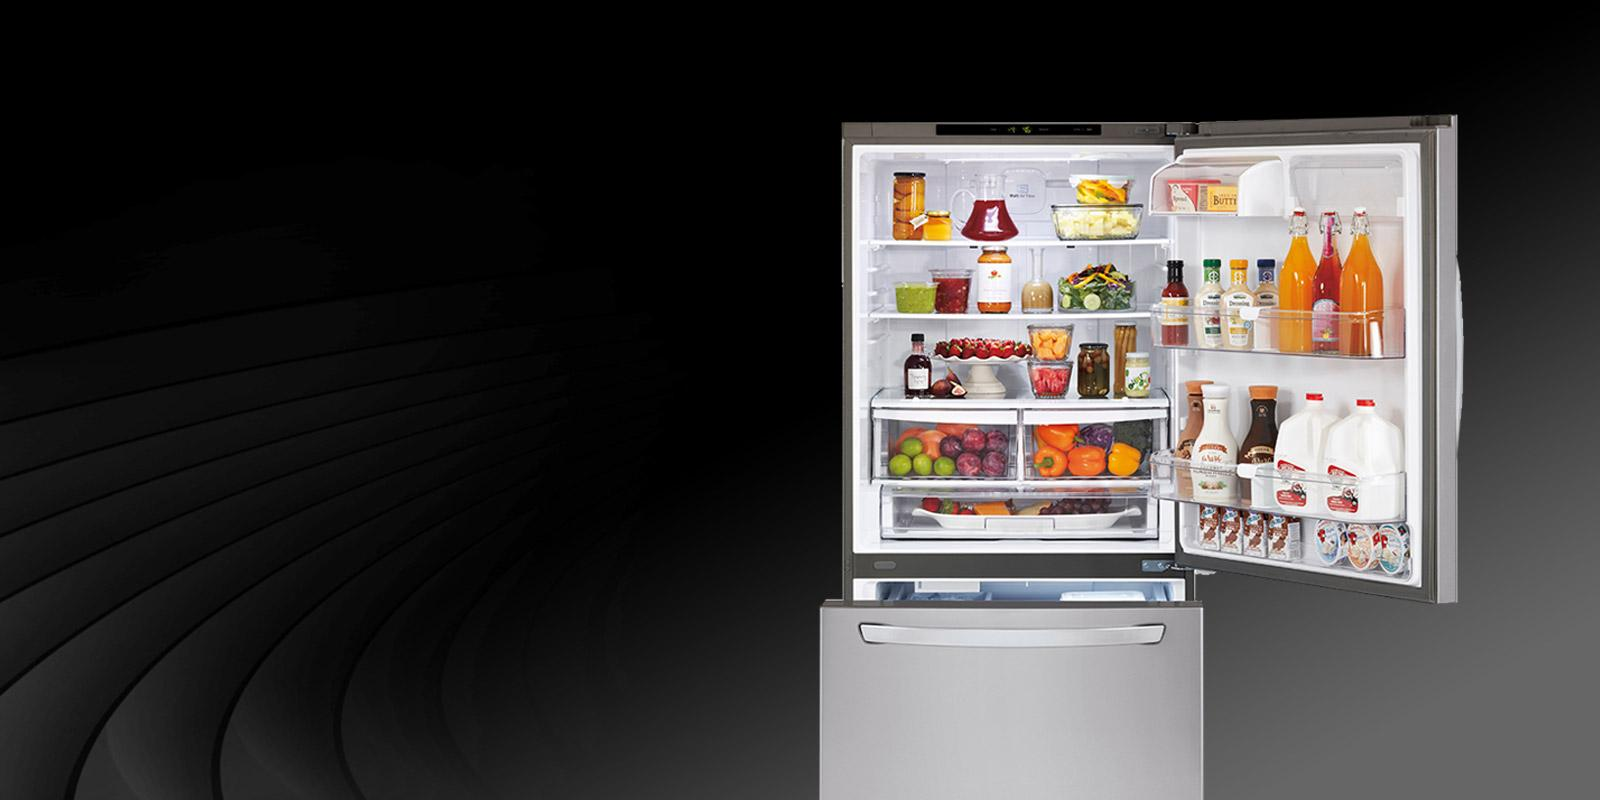 Front view of an LG refrigerator with a bottom freezer.